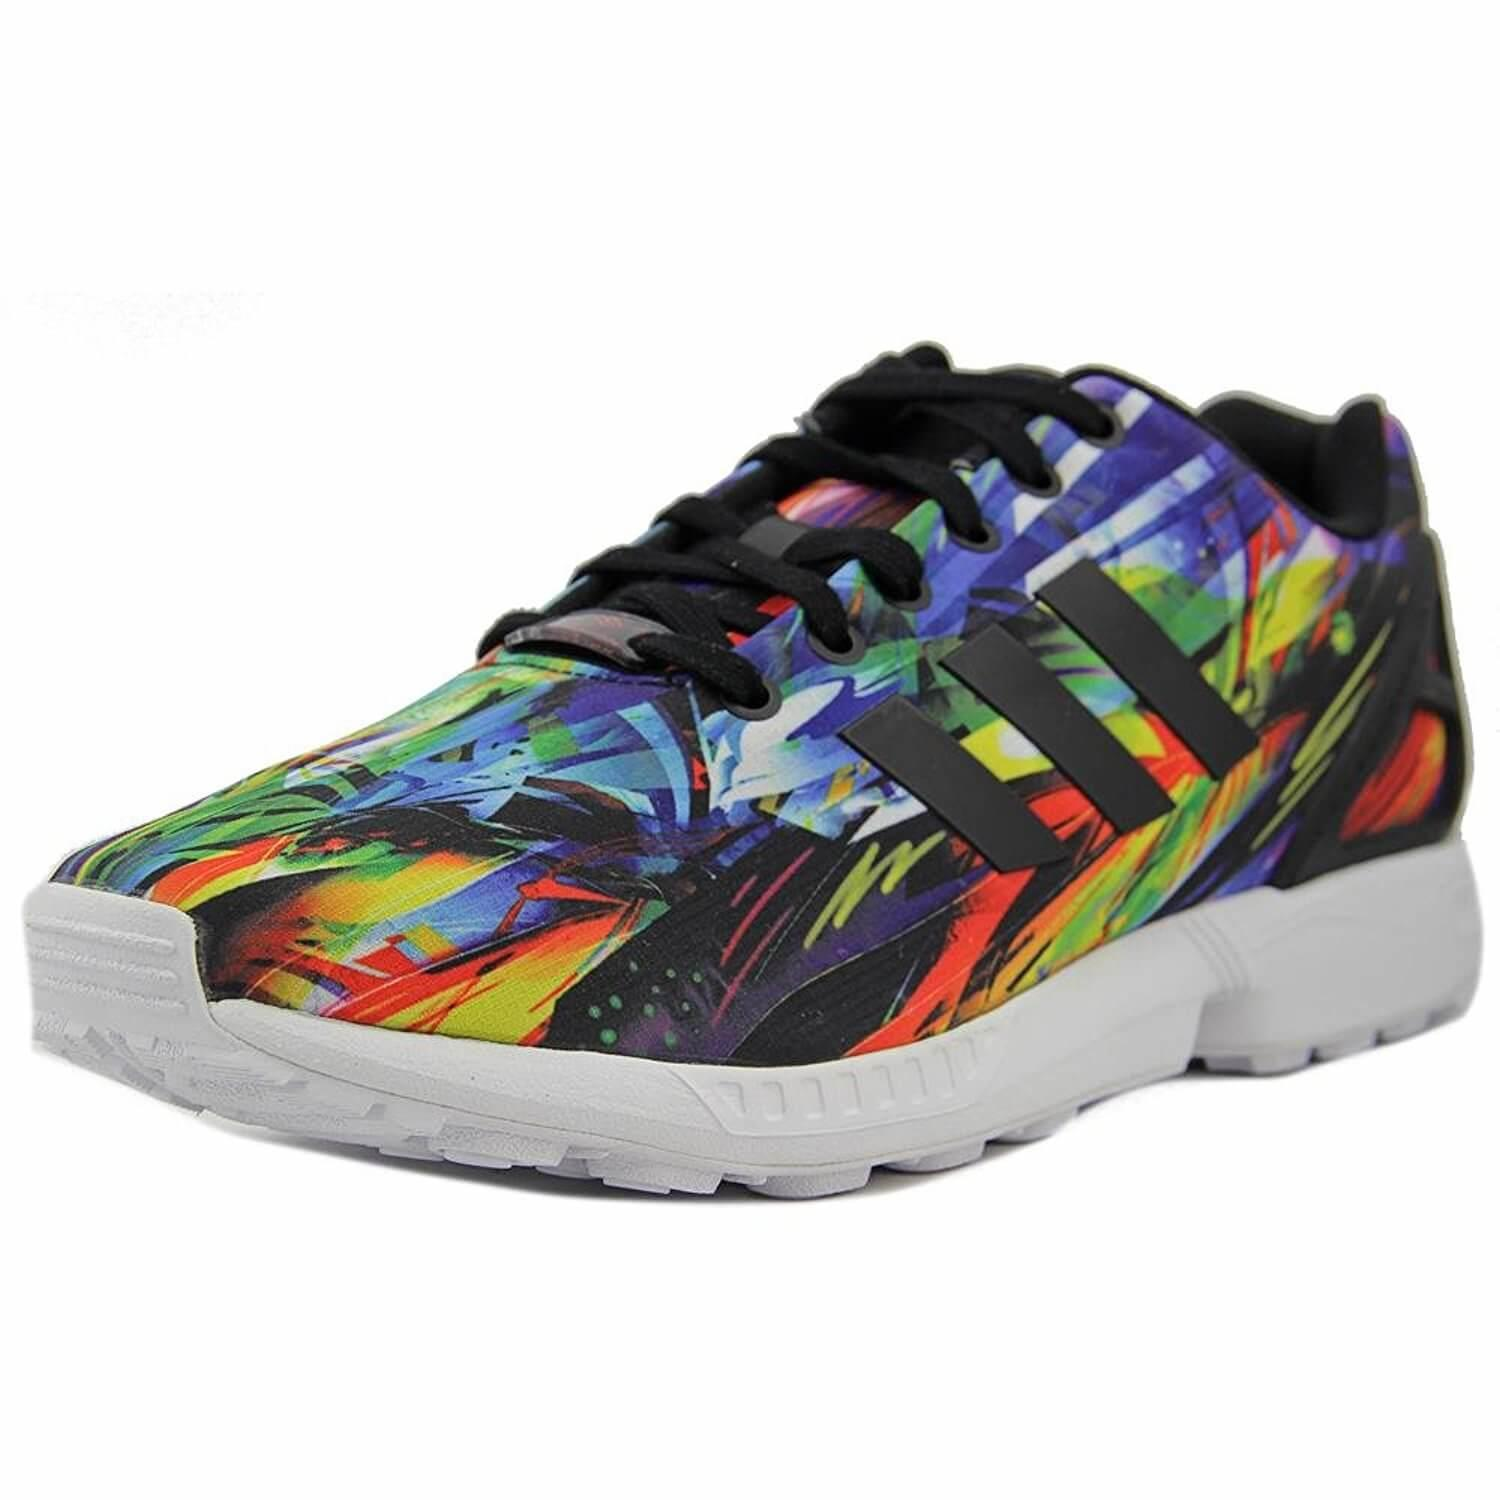 Best Colorful Running Shoes Reviewed in 2018